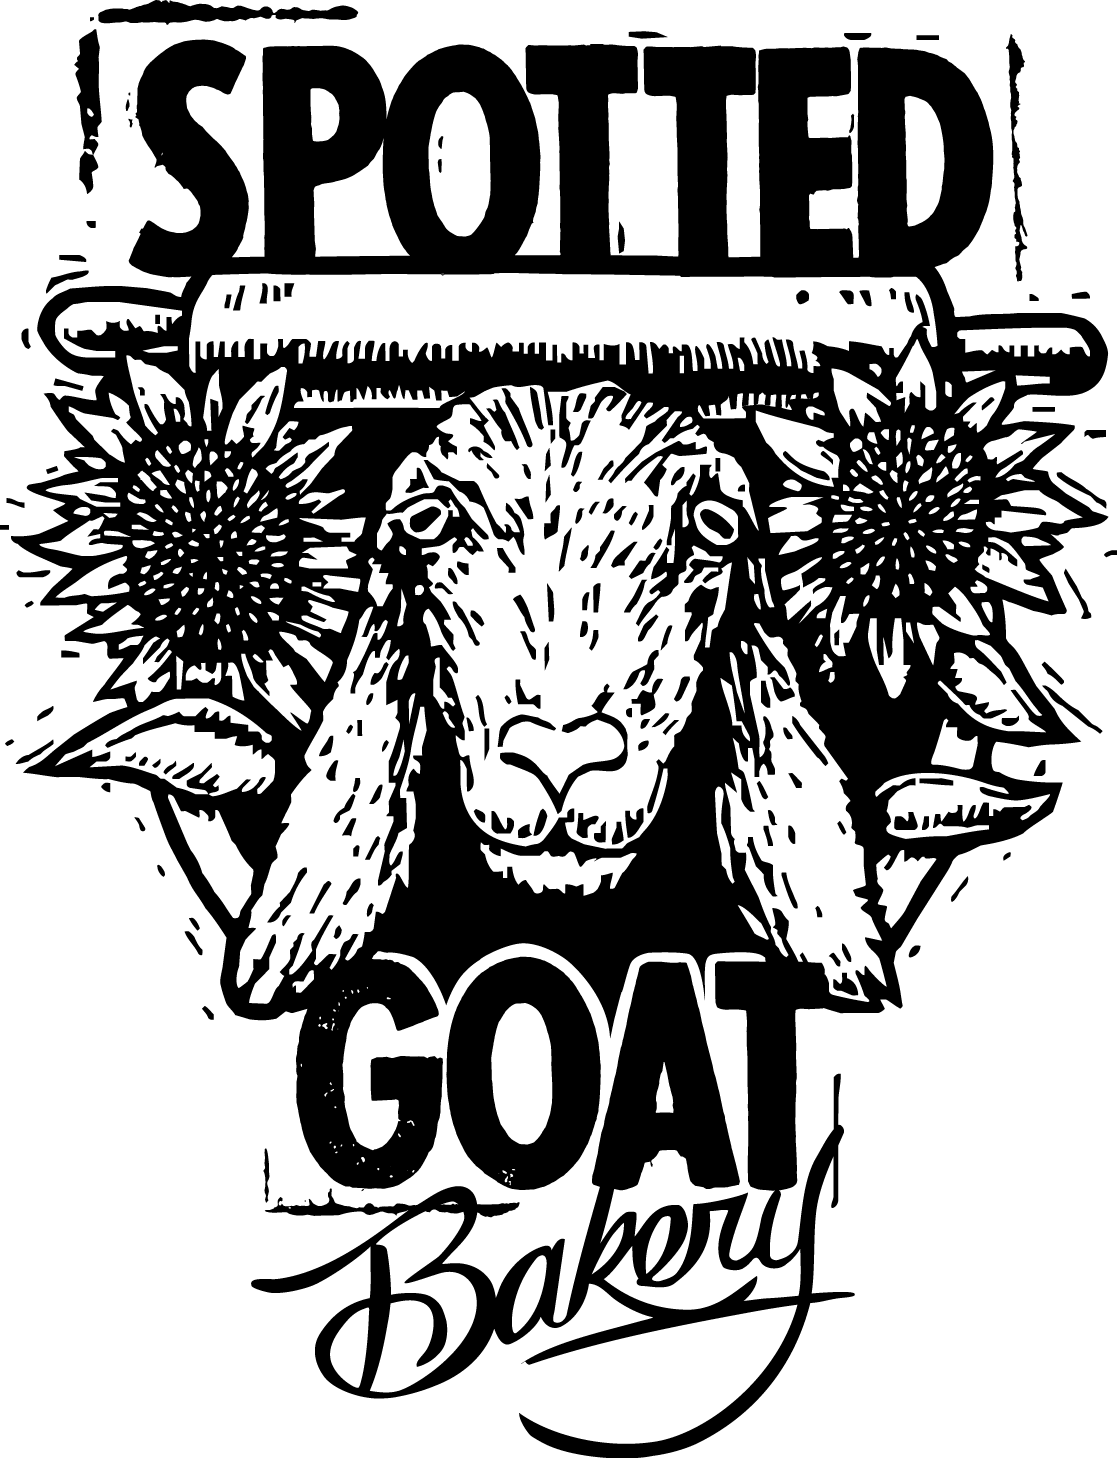 Spotted Goat Bakery